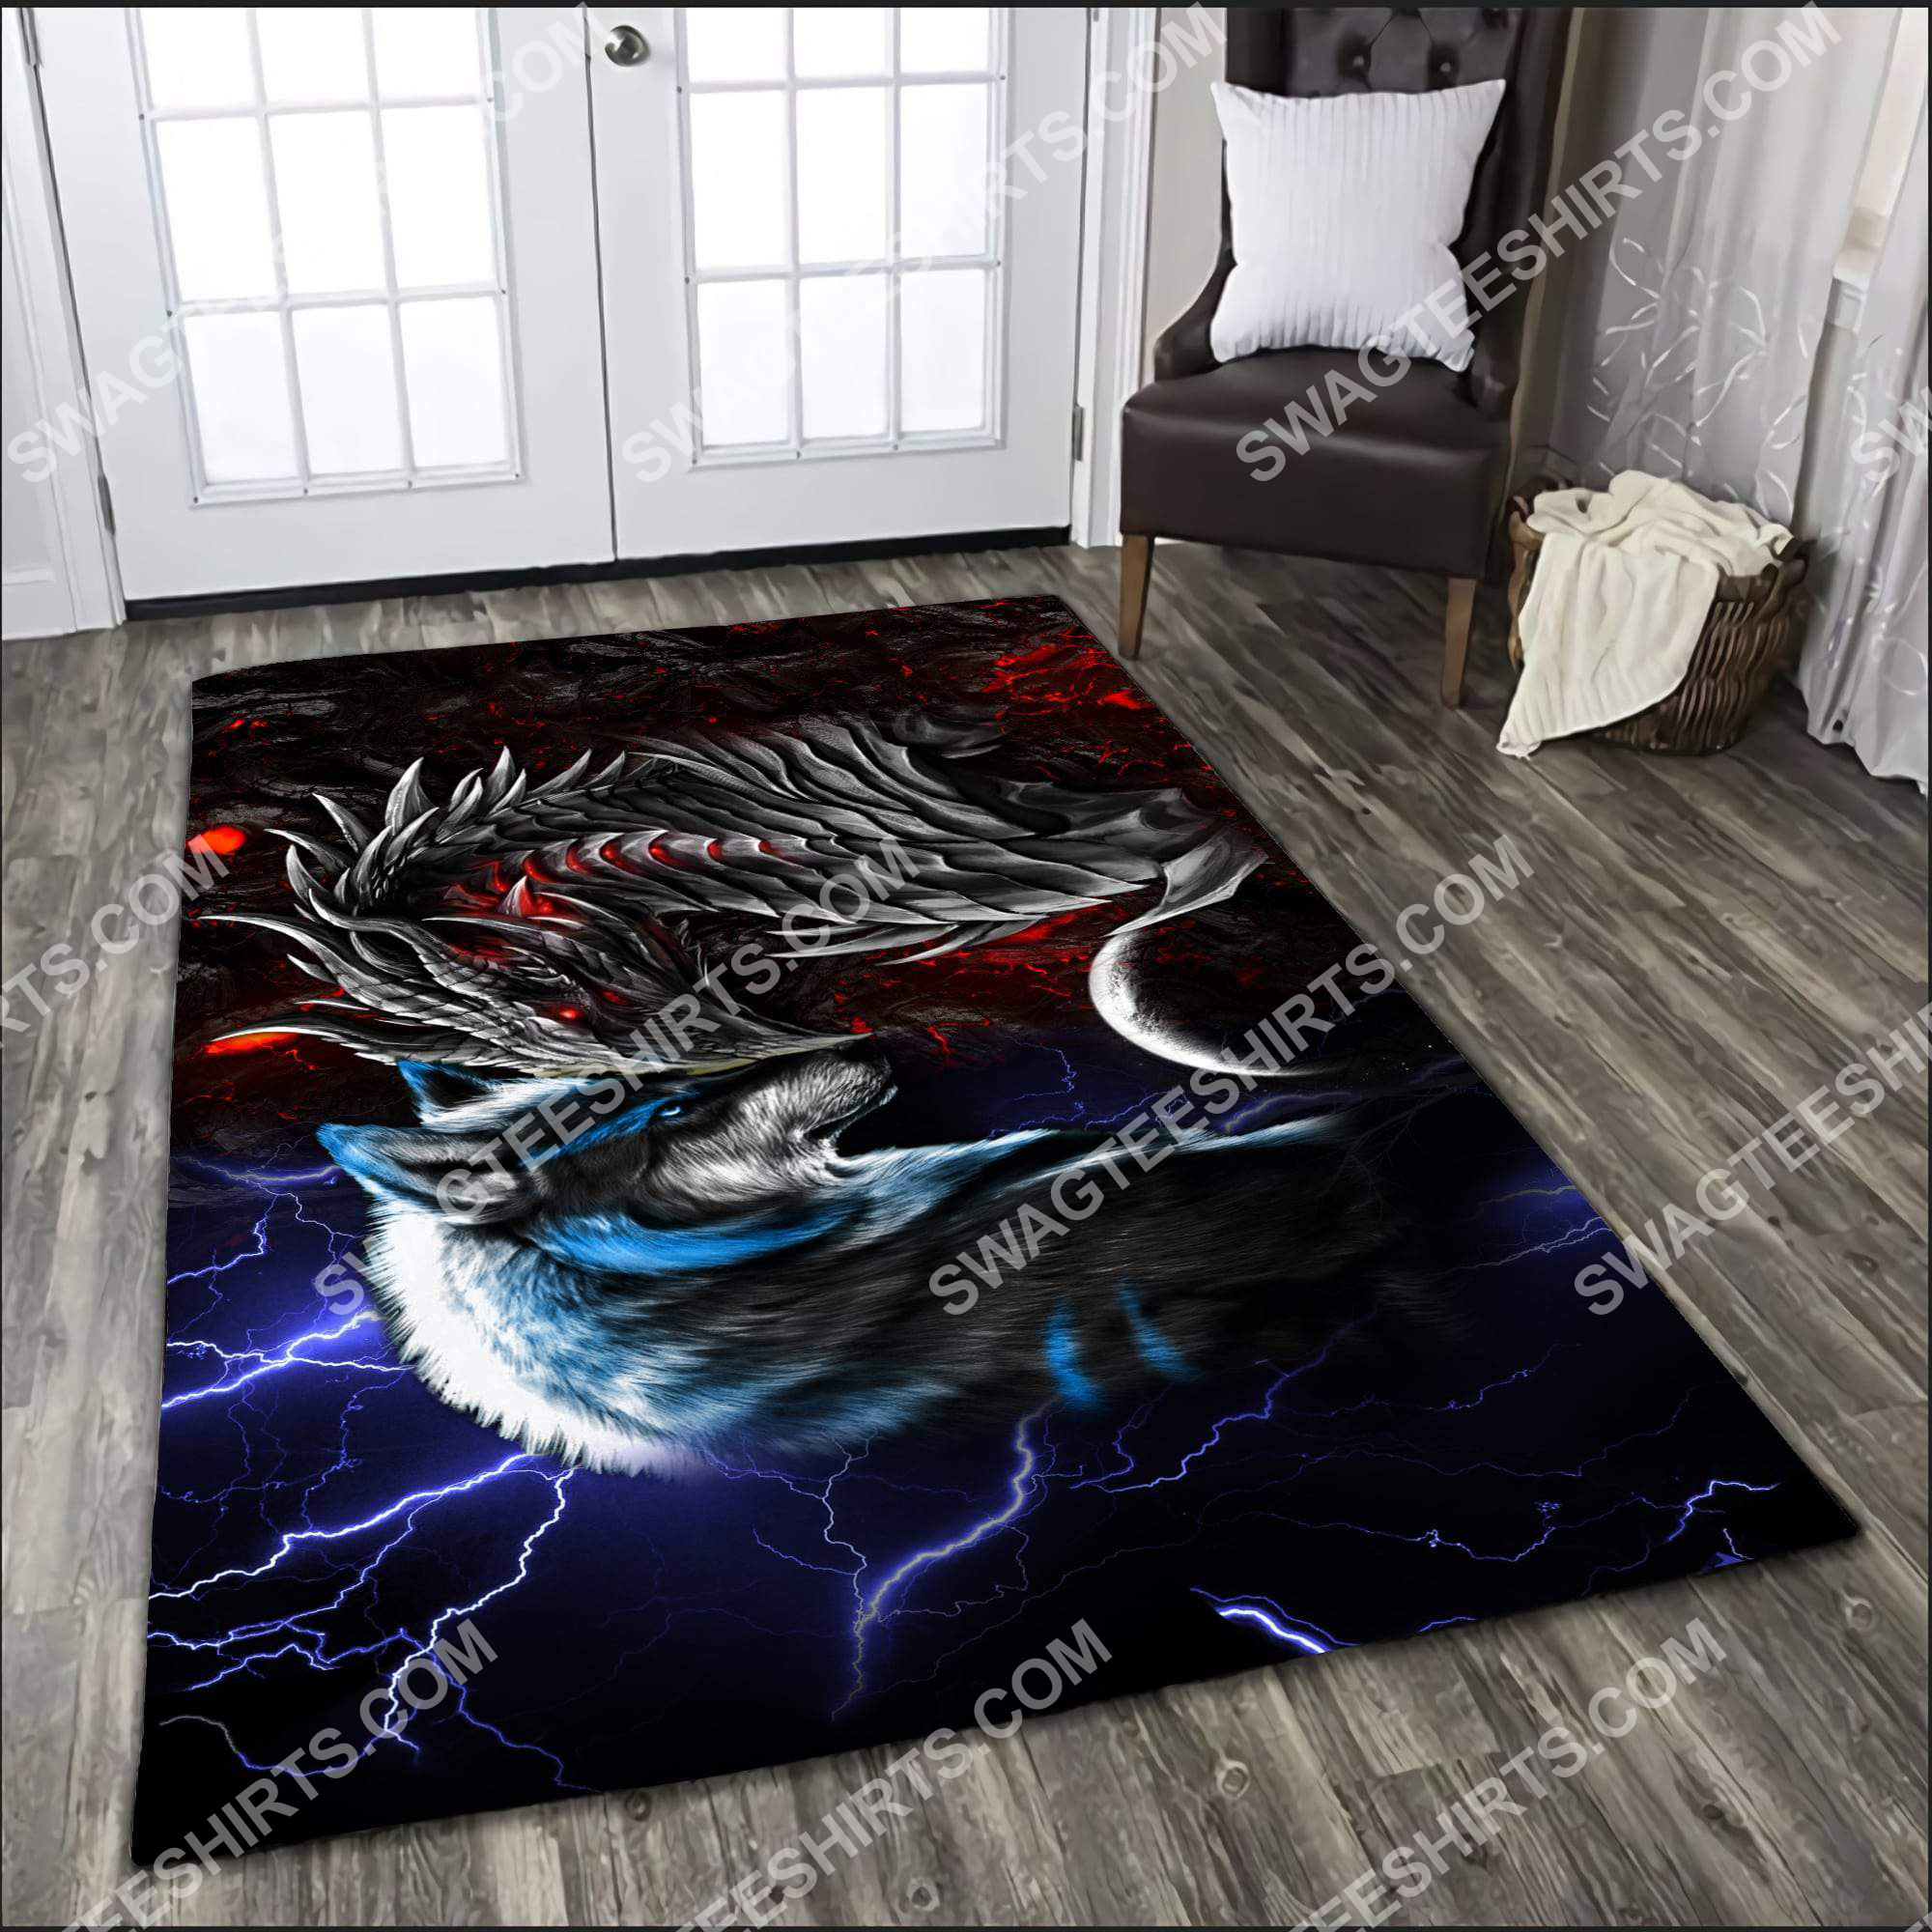 thunder and fire dragon and wolf all over printed rug 3(1)